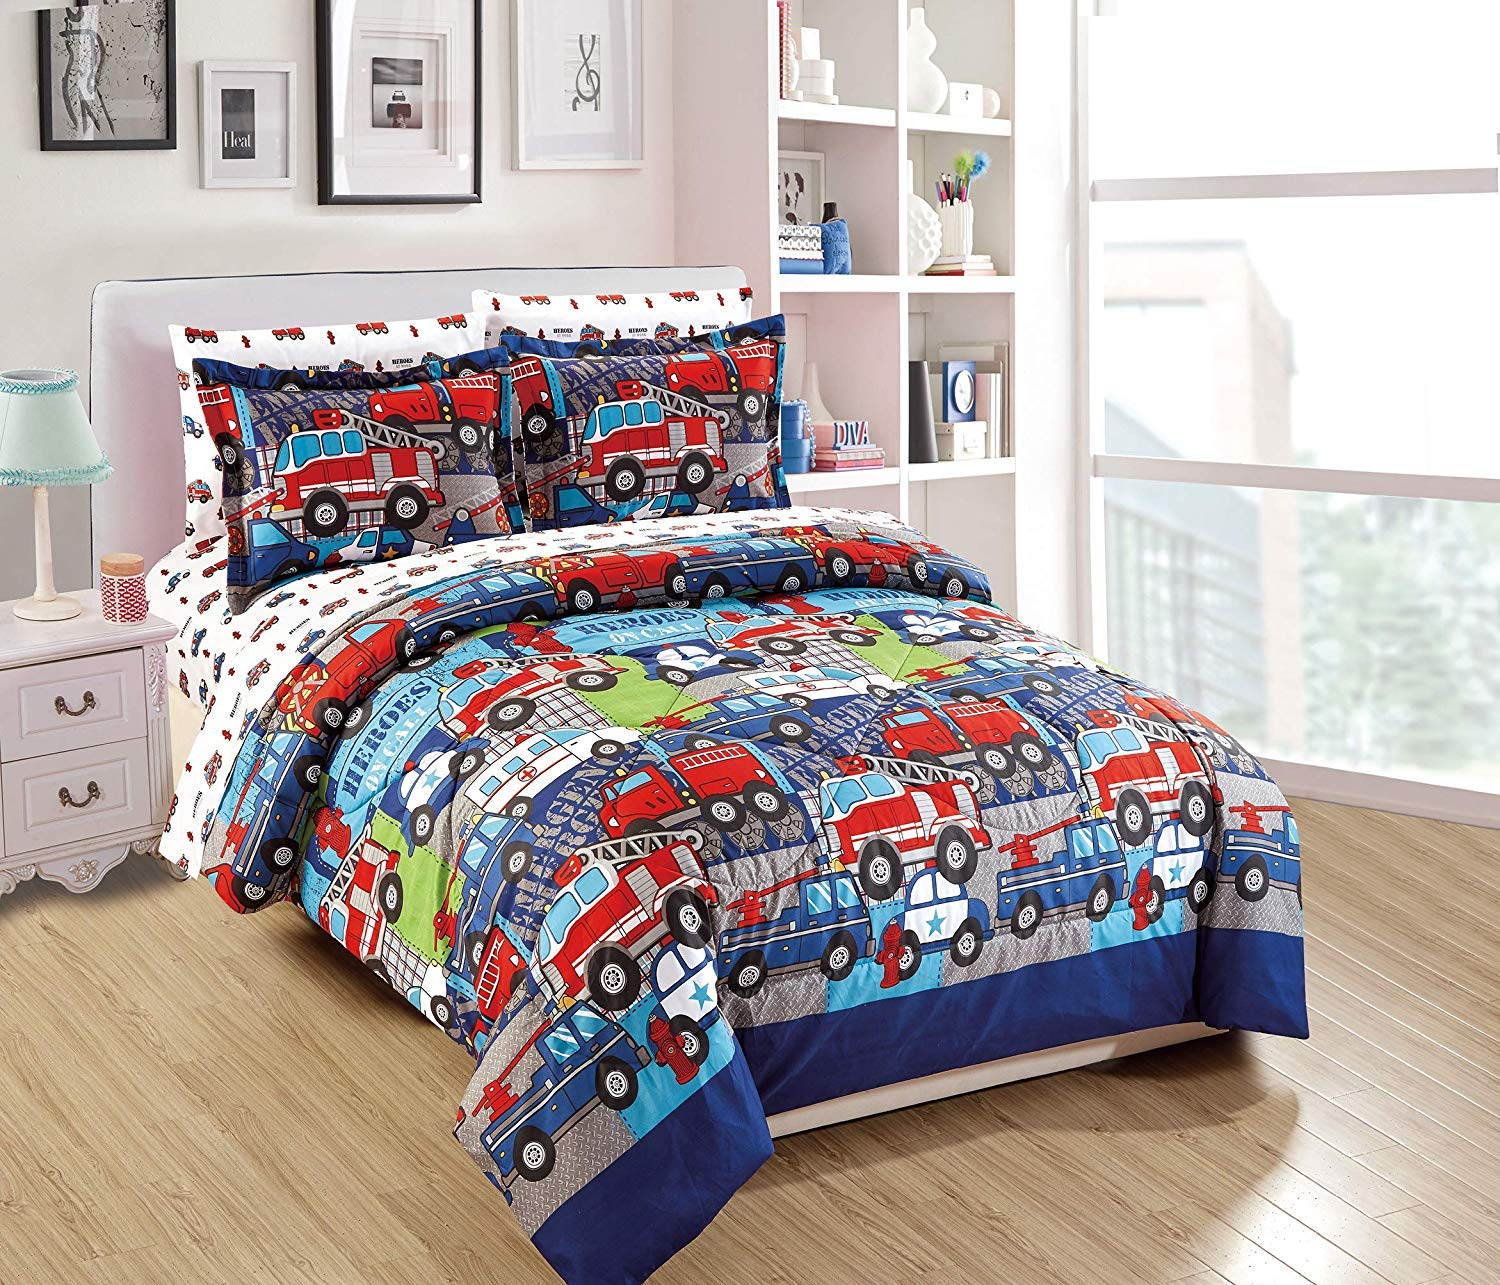 Elegant Home Multicolor Heroes First Responders Police Cars Fire Trucks Ambulances Design 5 Piece Comforter Bedding Set for Boys/Kids Bed in a Bag with Sheet Set # Heroes 2 (Twin Size)